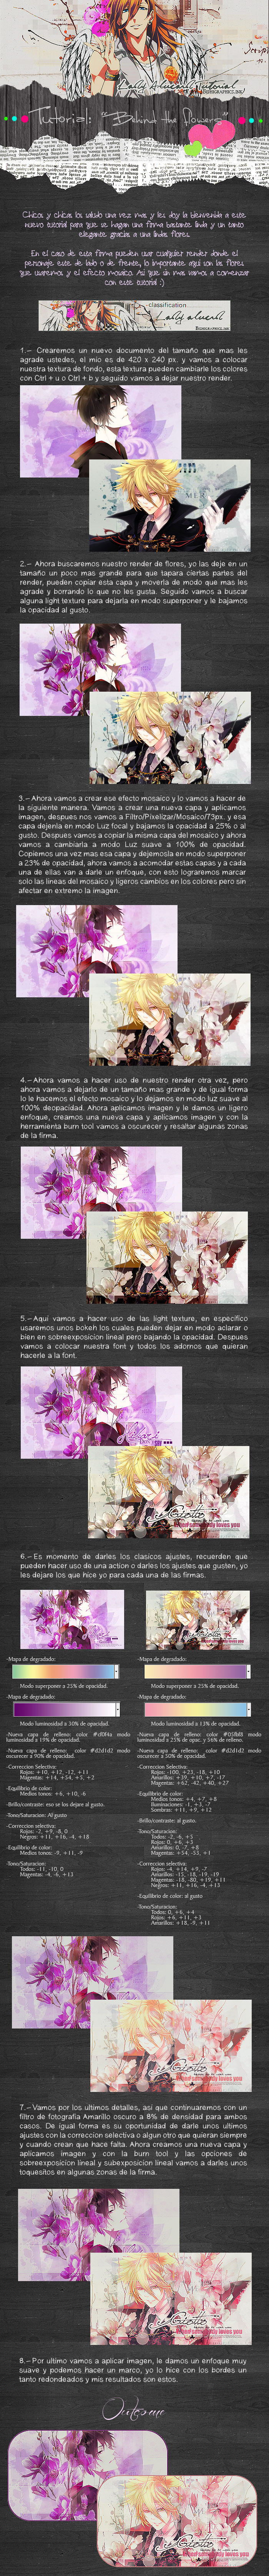 Tutorial_-_Behind the flowers by lady-alucard